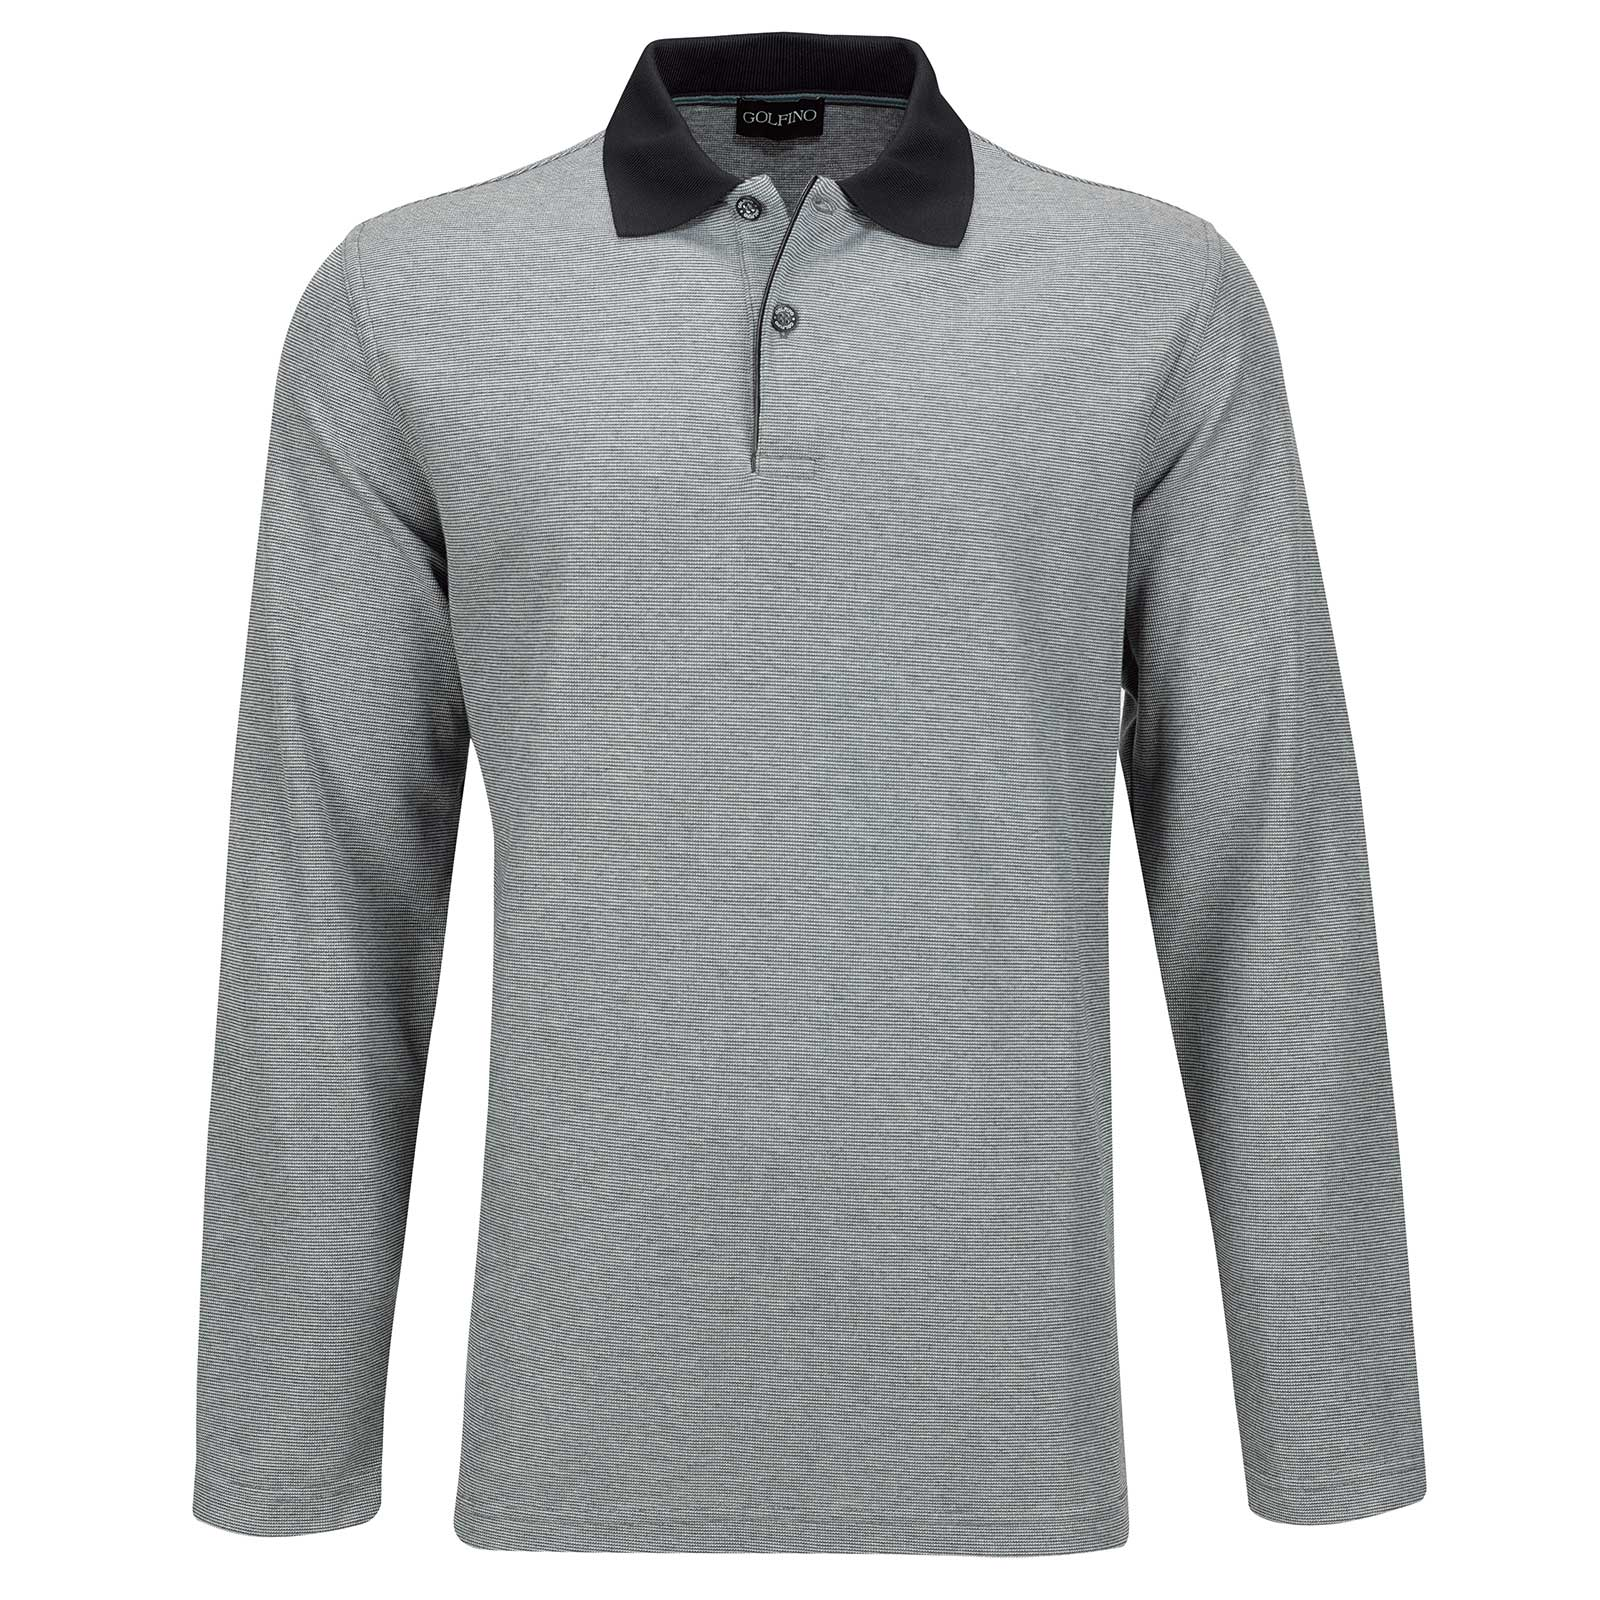 Polo de golf de manga larga Silver Protection de hombre con Moisture Management en corte normal